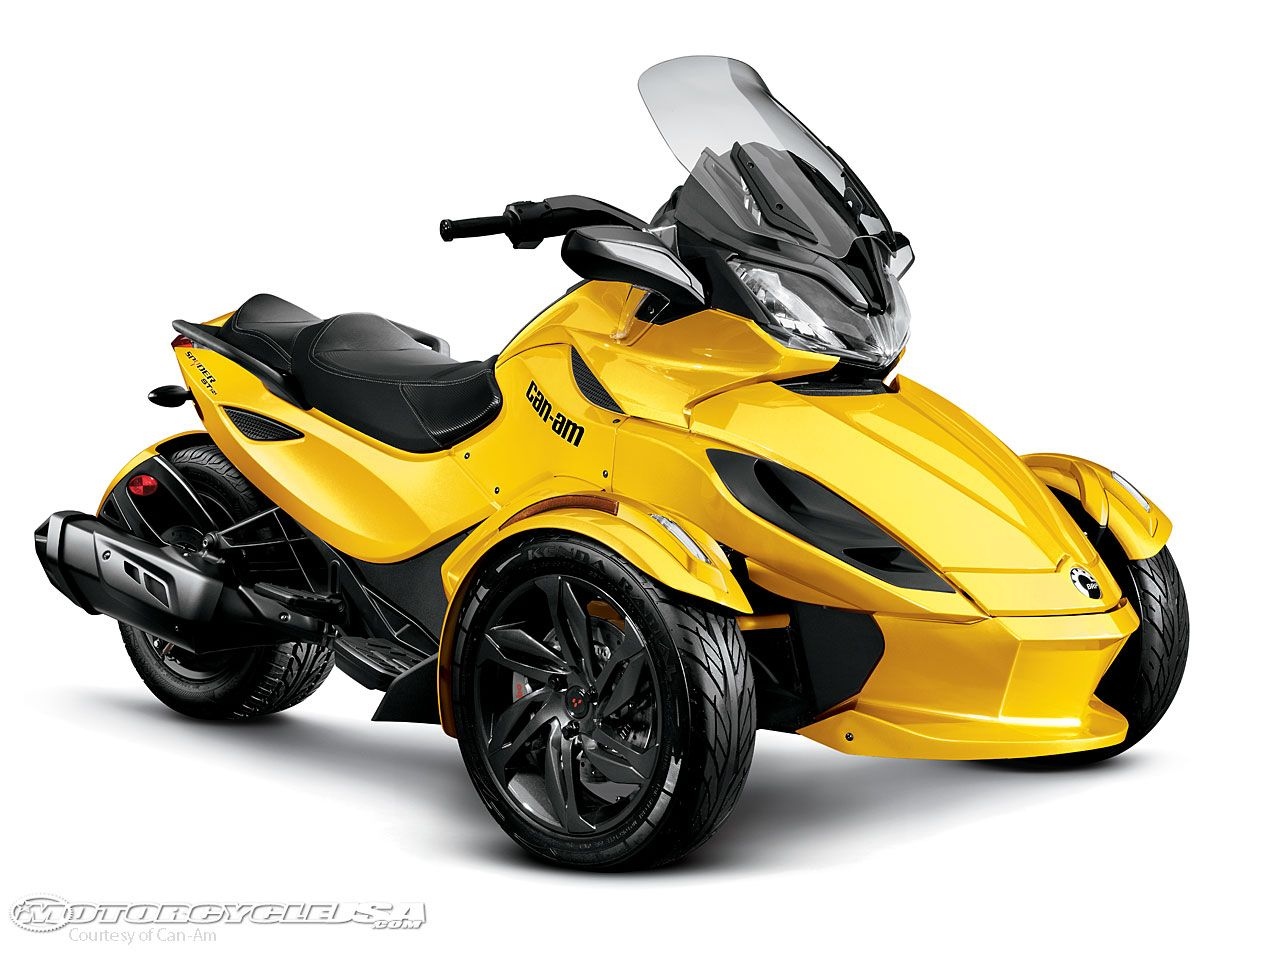 Moto Bike Modification Can Am Spider Motorcycle Offers New